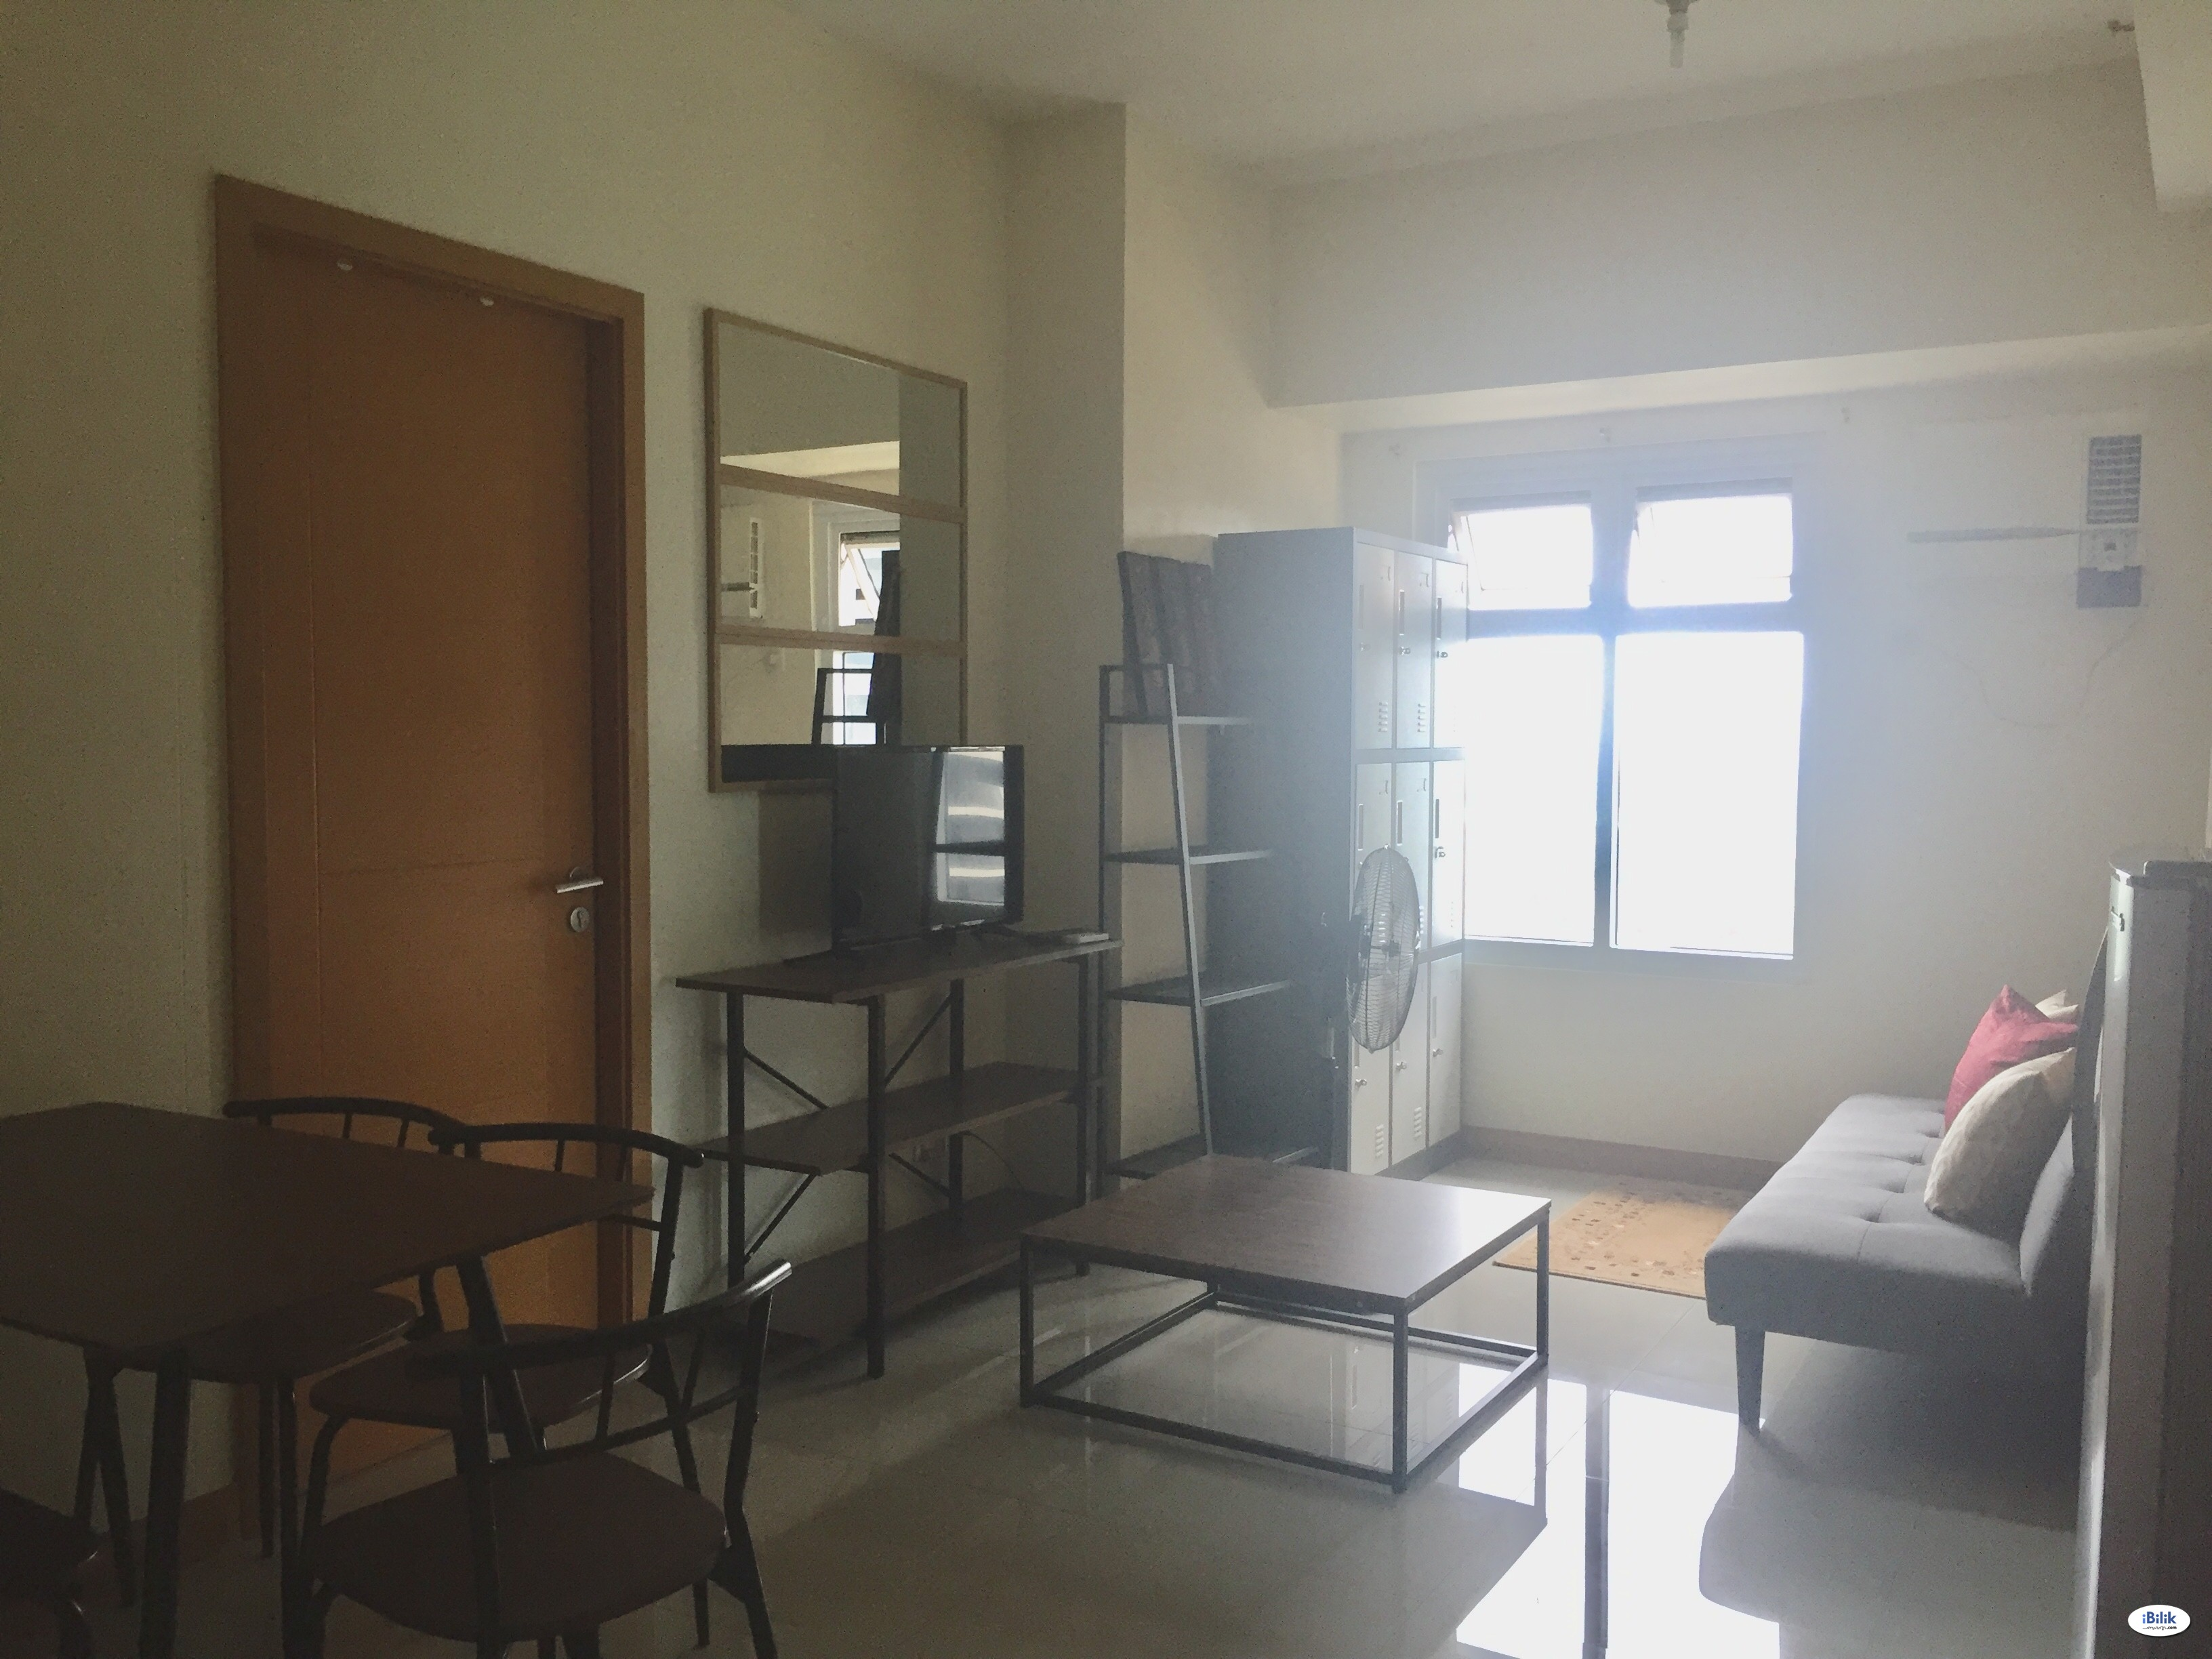 Condo Sharing / Bedspace in BGC for Females